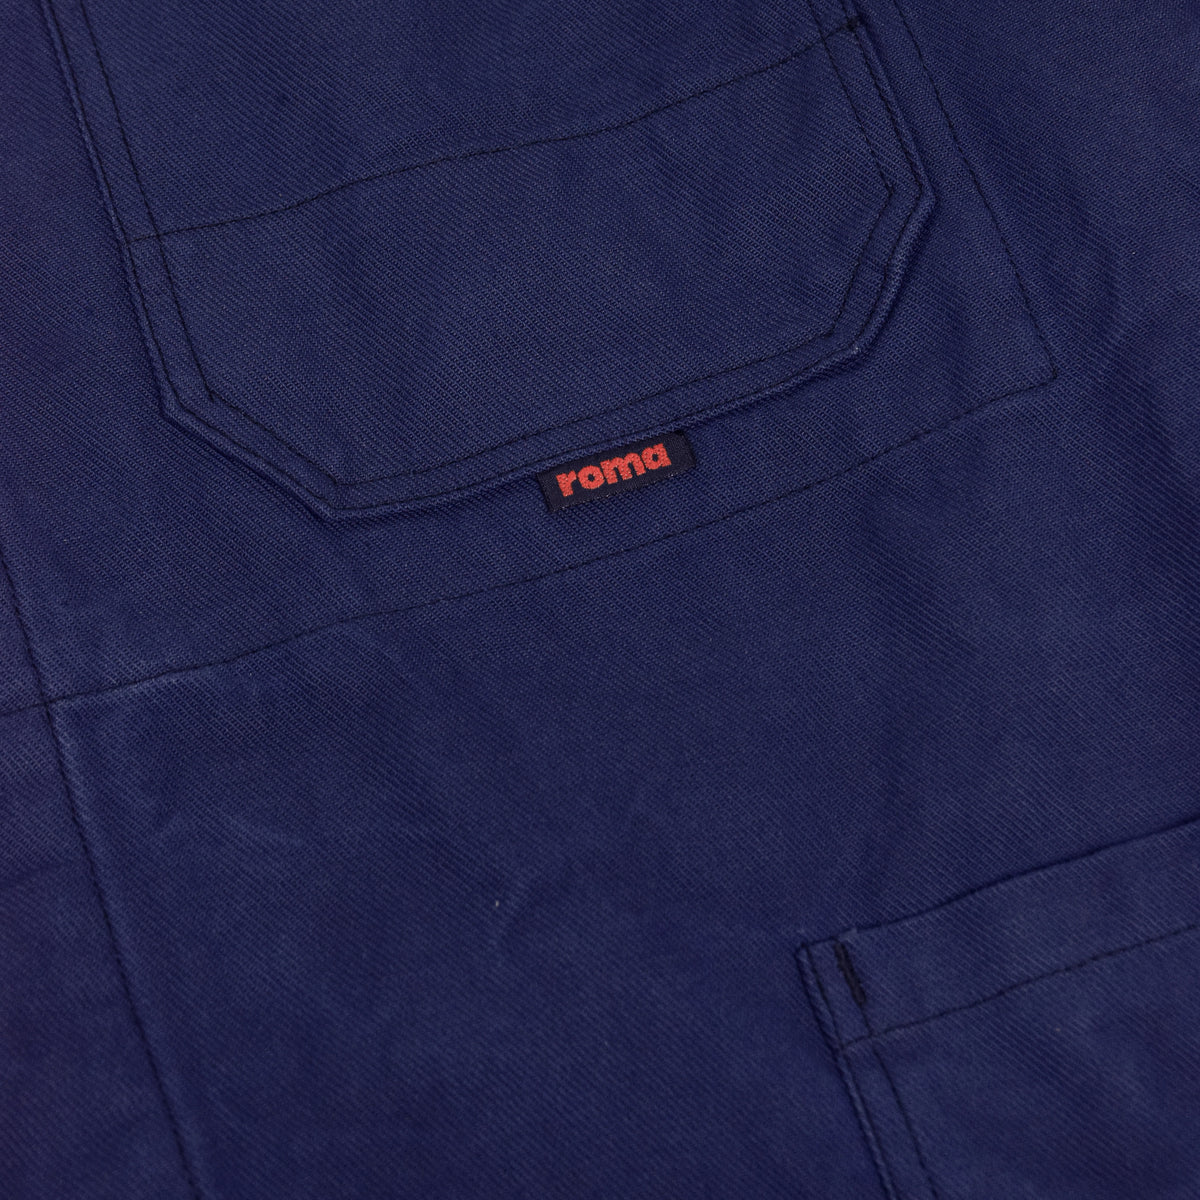 Vintage Blue French Style Worker Sanforized Cotton Twill Chore Jacket L label